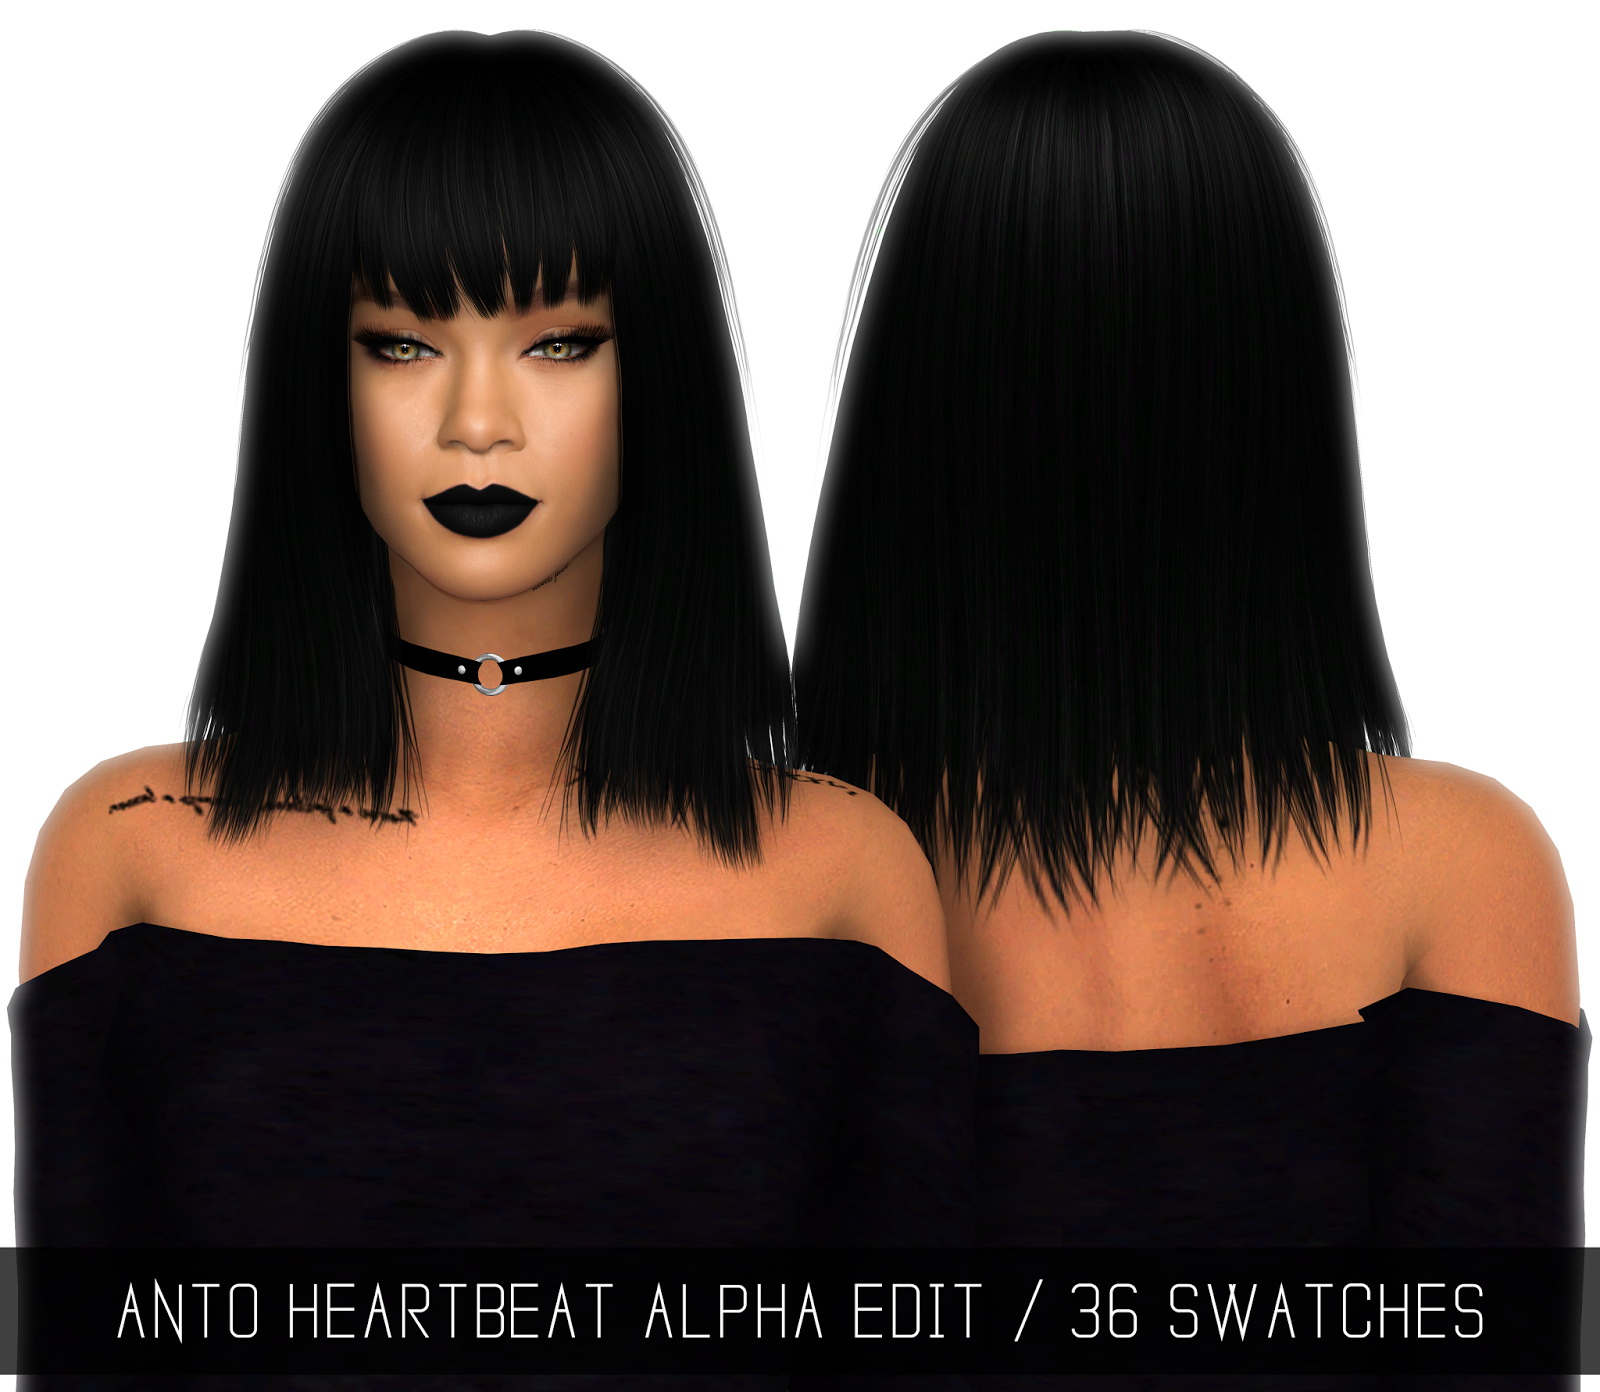 Sims 4 Hairs Simpliciaty Anto S Heartbeat Hair Retextured